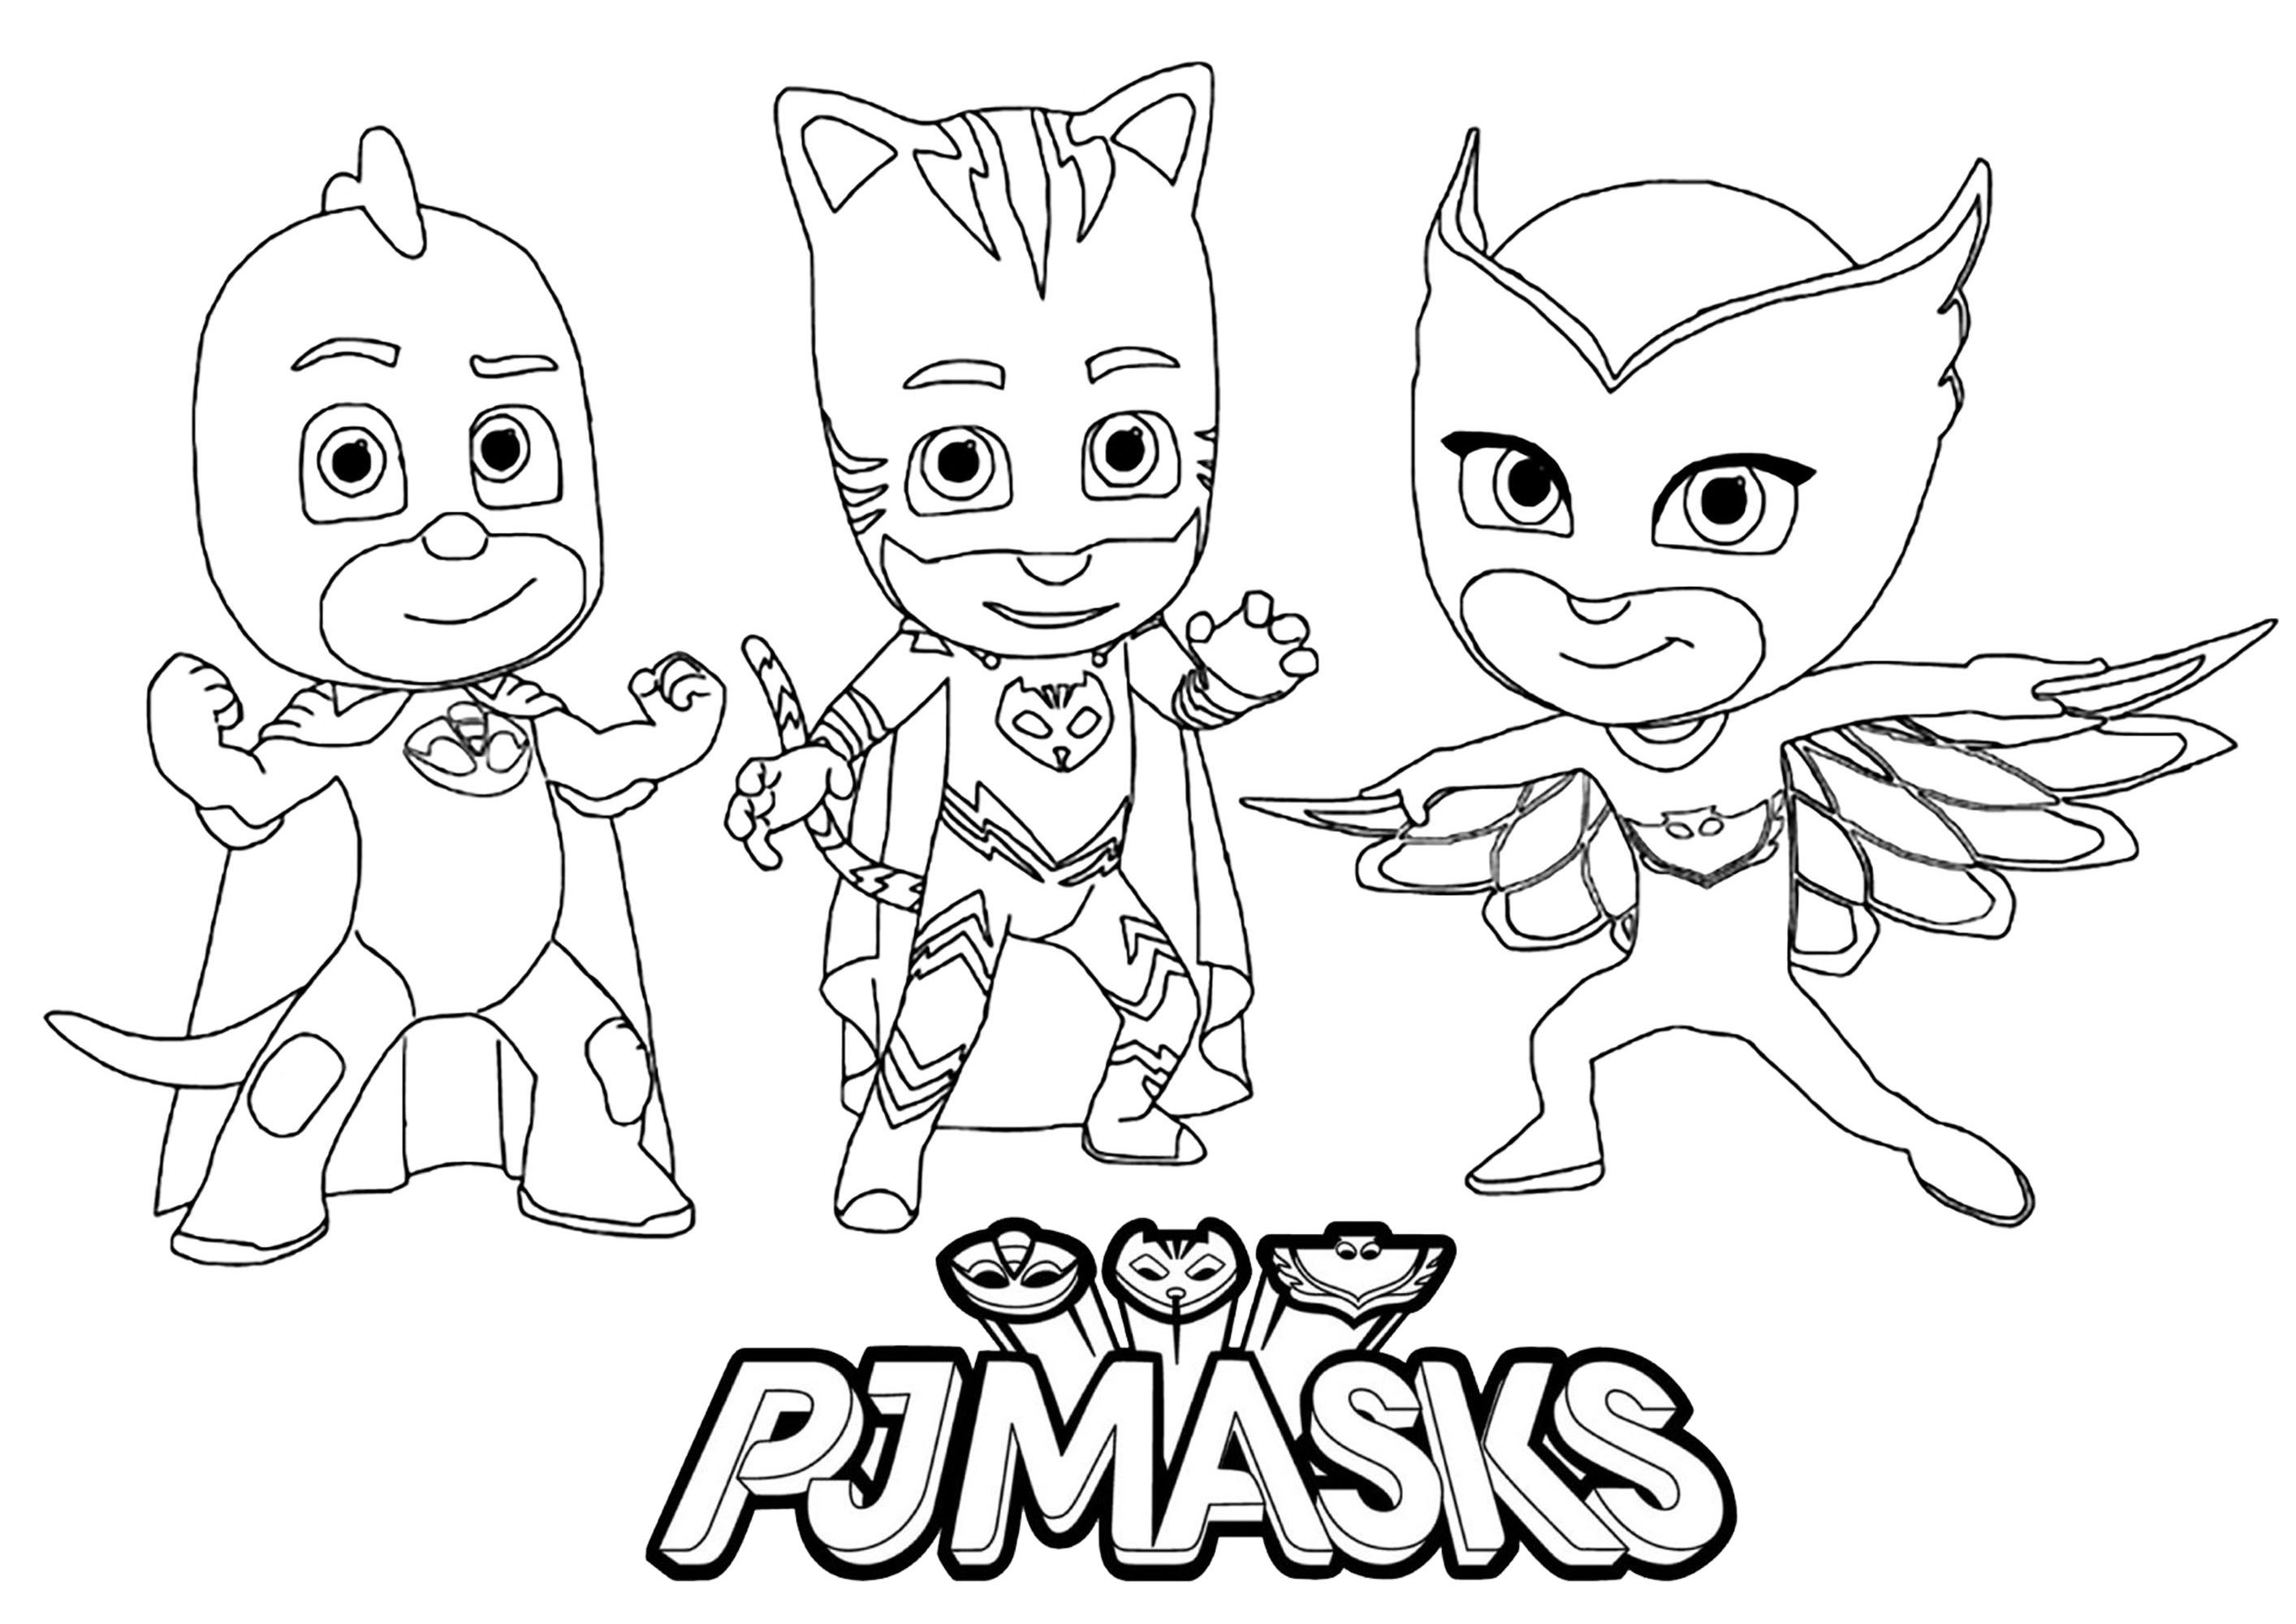 Pj Masks To Download For Free Pj Masks Coloring Pages For Kids